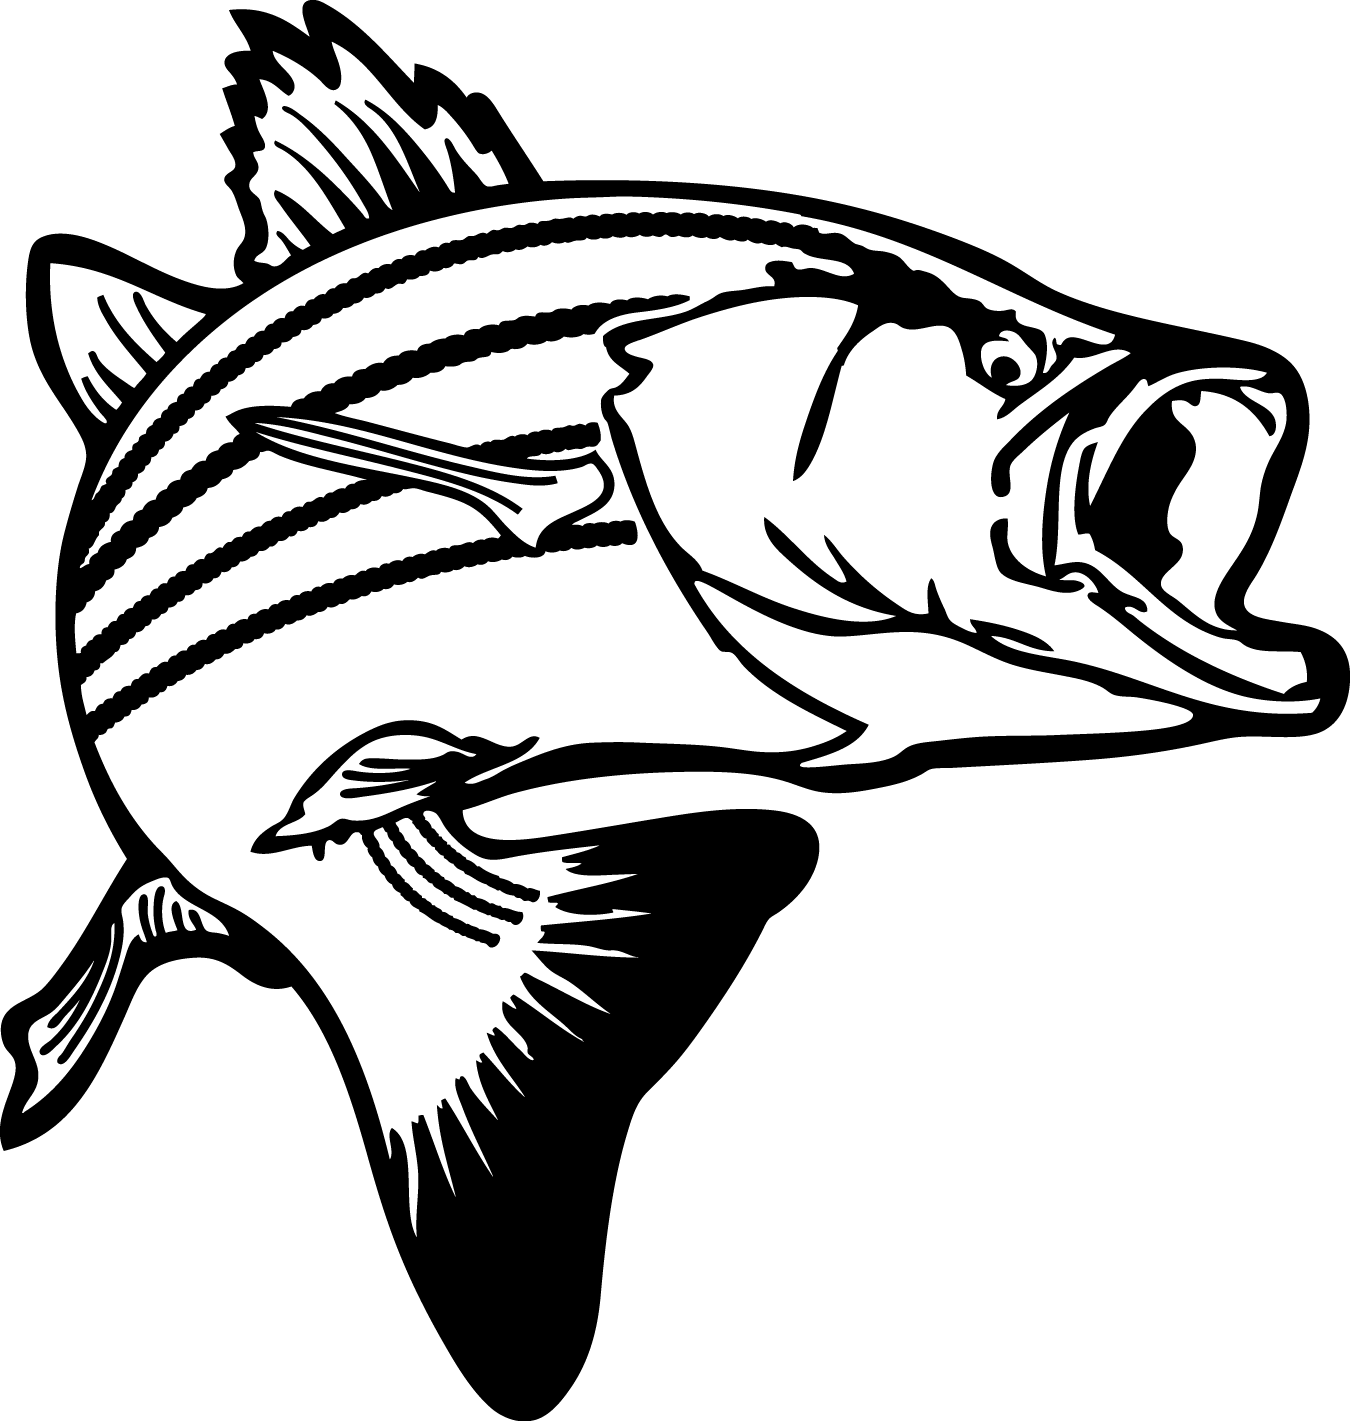 Skeleton bass fish clipart clip art black and white library Jumping Bass Fish Clip Art | Clipart Panda - Free Clipart Images ... clip art black and white library